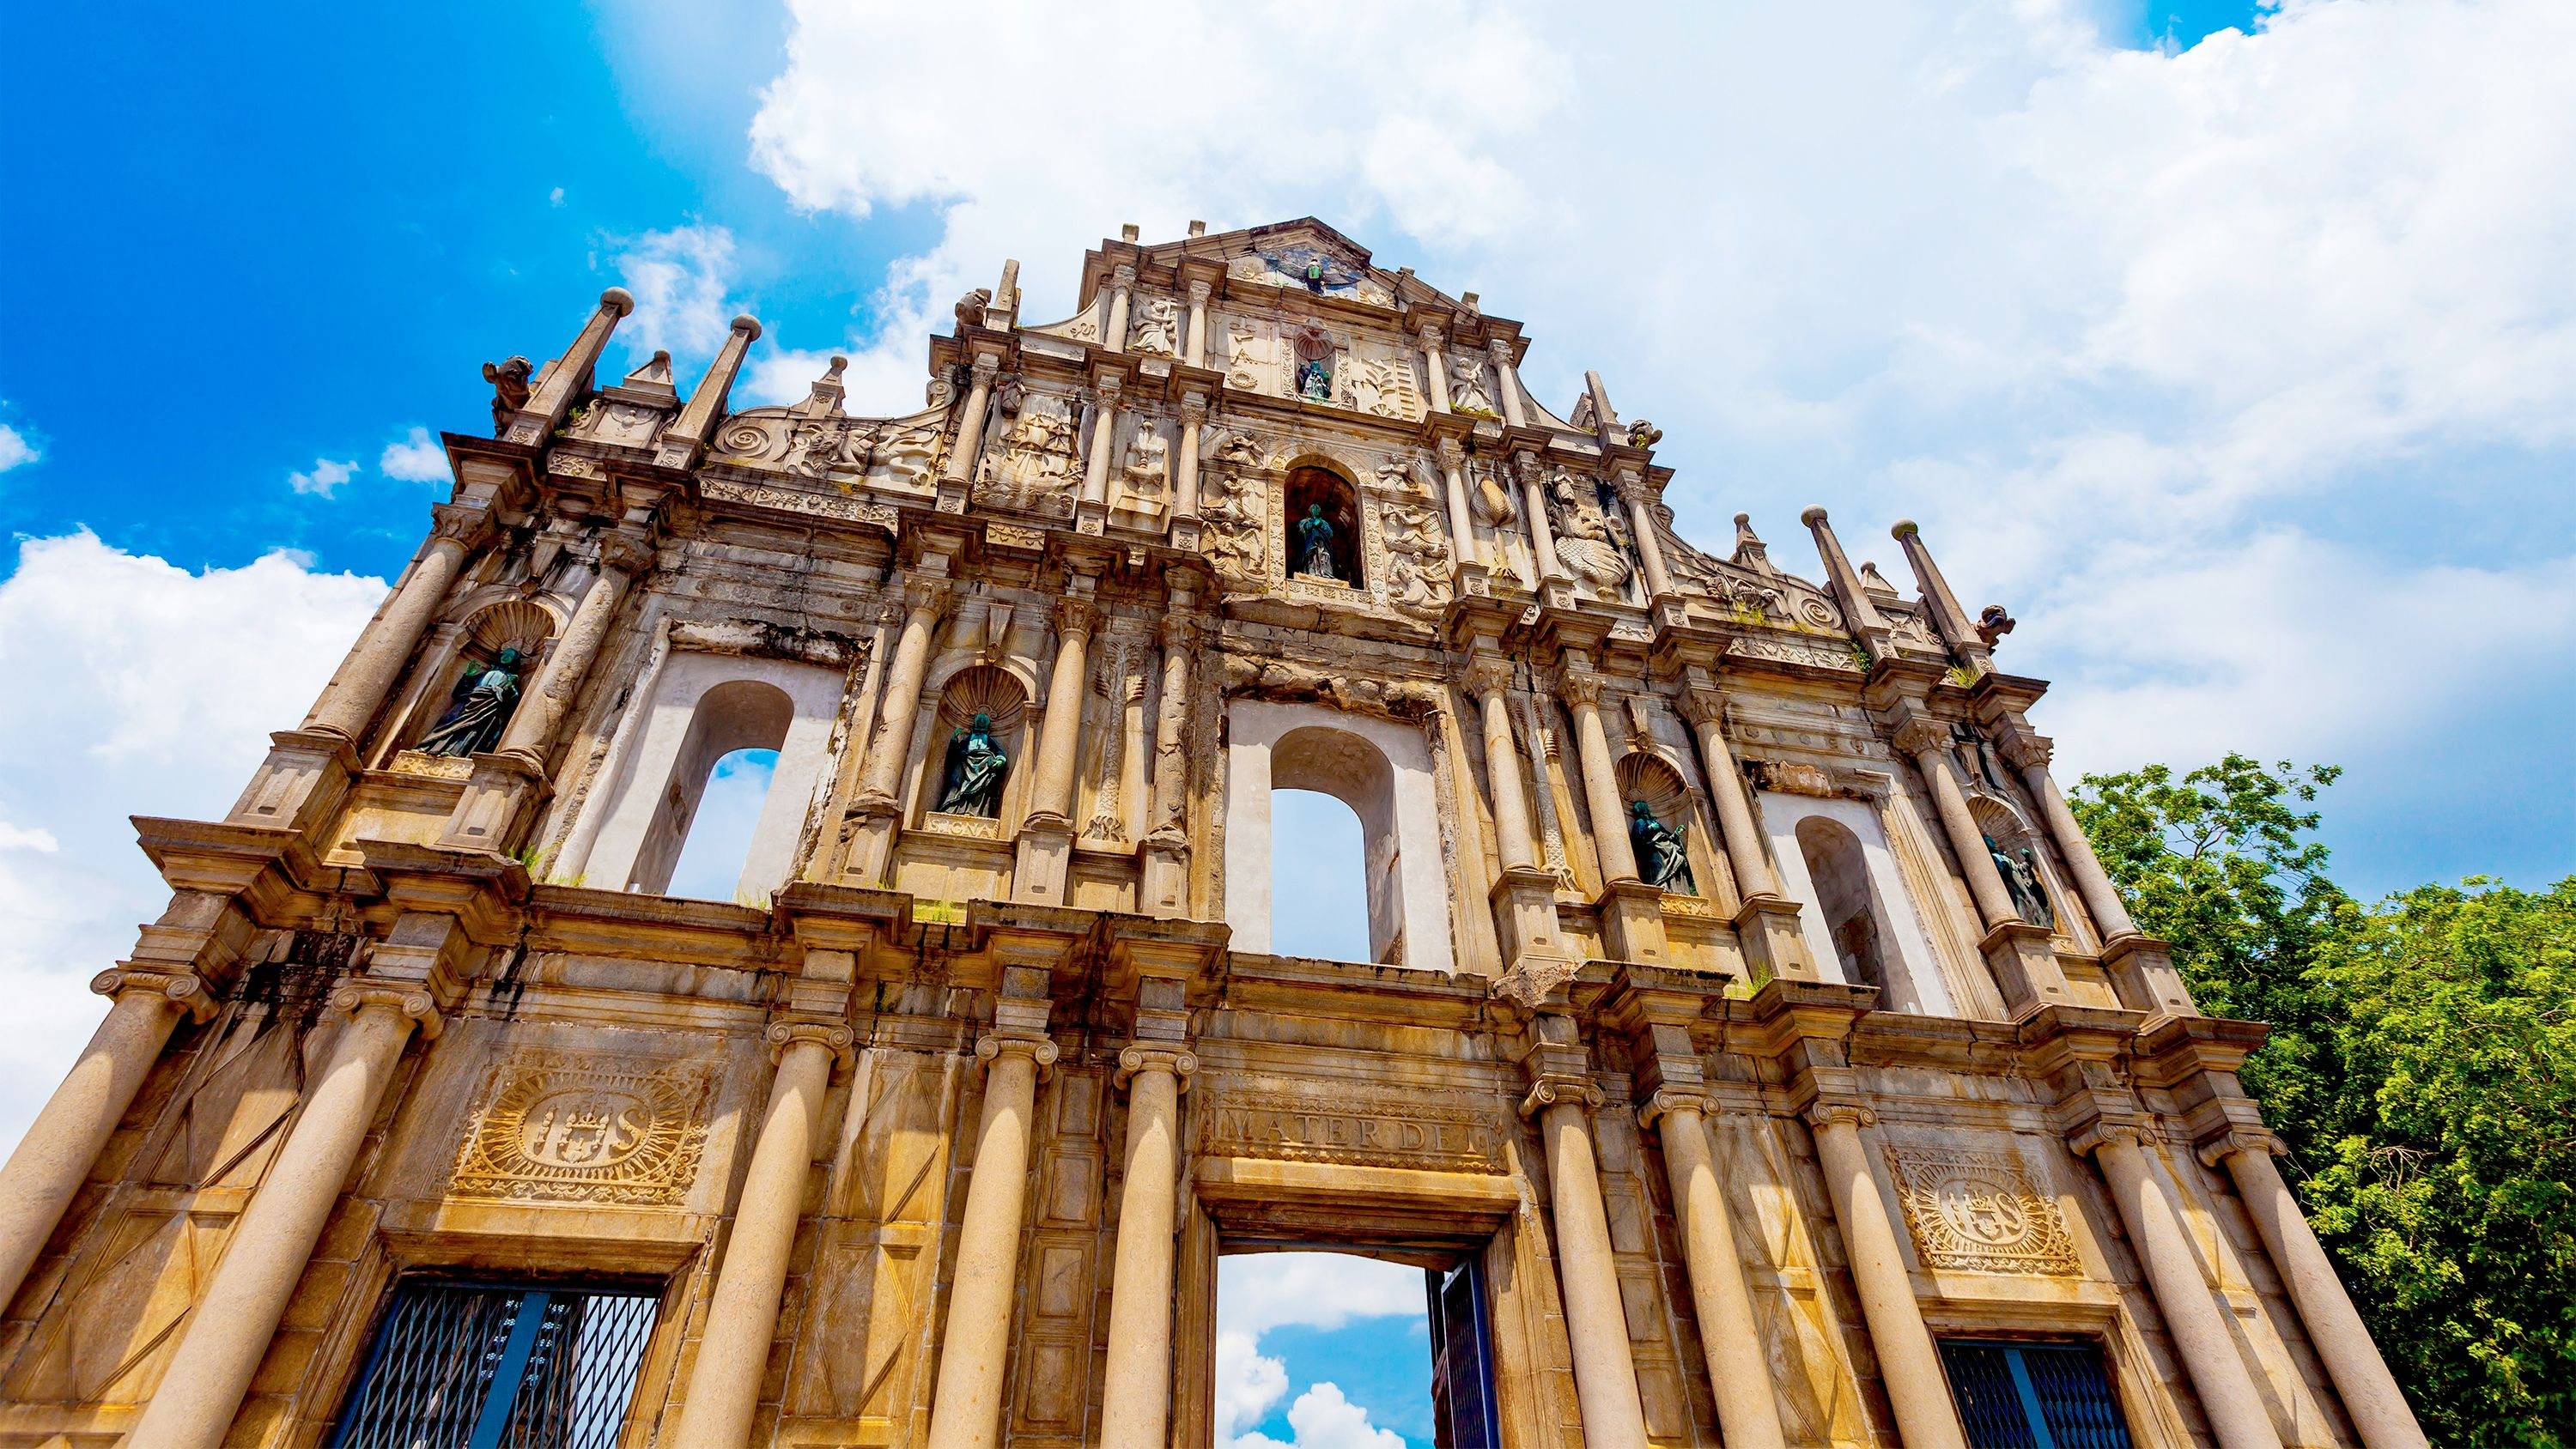 Day Tour of Macau's Historic Landmarks with Ferry from Hong Kong